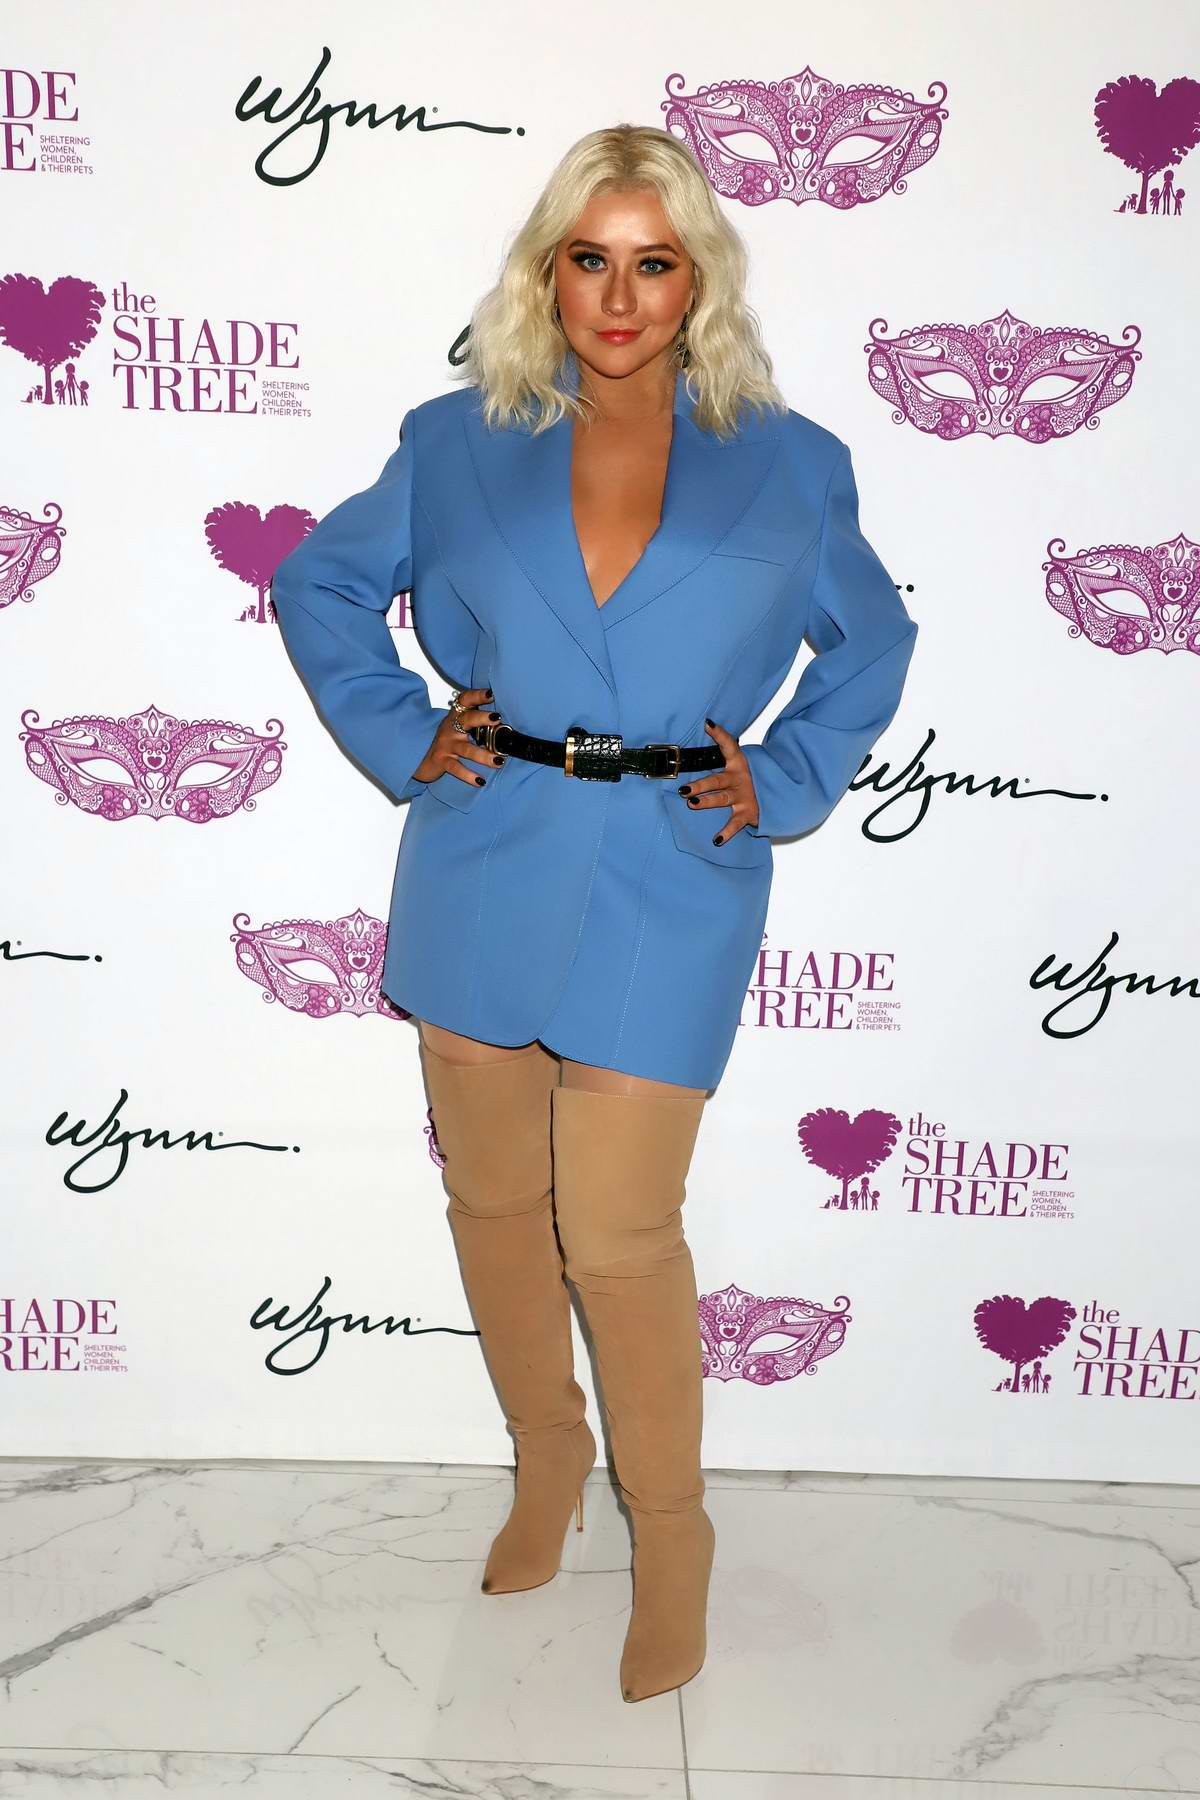 Christina Aguilera honored at 'Mask Off Gala' in Las Vegas, Navada